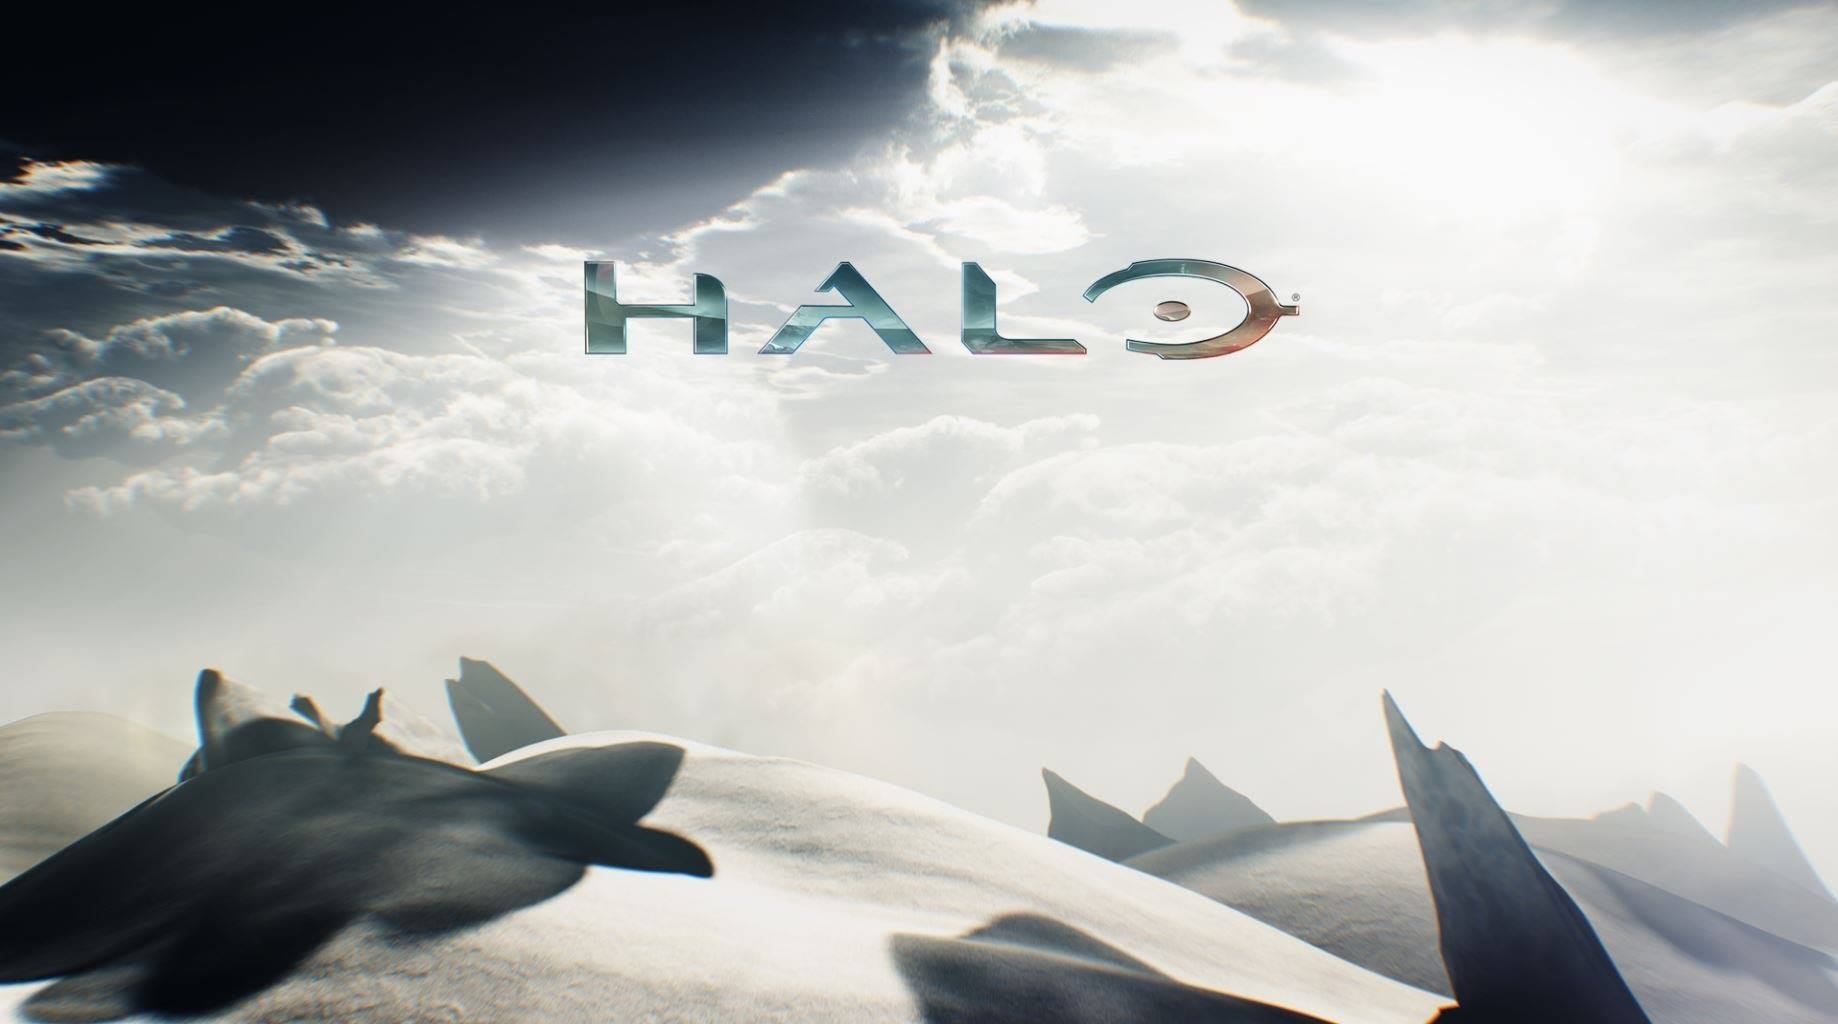 Halo 5 Guardians wallpaper 5 1838x1024